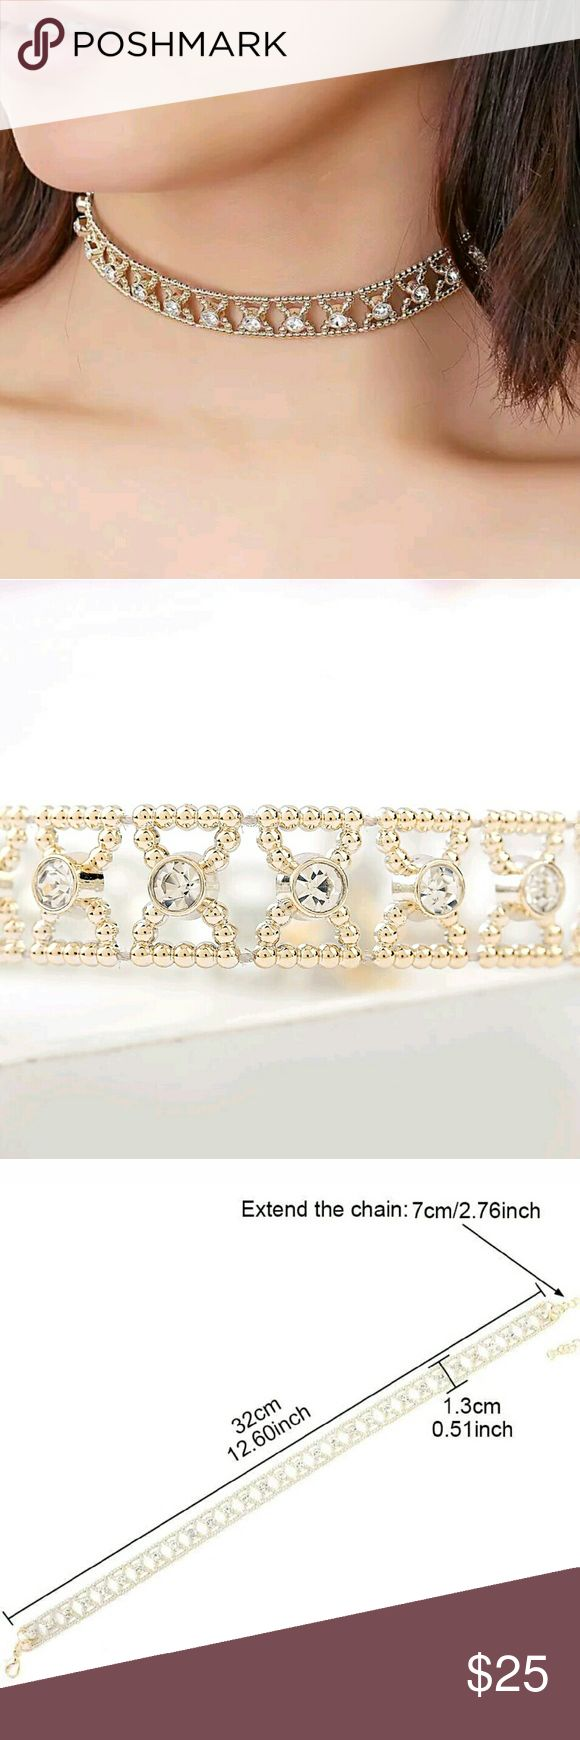 """⭐NEW! Sparkling Iced Kisses Gold Choker It's all about chokers this season! Browse through our boutique to see the many different styles. Bundle & save!   I absolutely love this! Super trendy..  Gold plated alloy  Length: Approx 12""""  New in package   ▪ No Trades  ▪ Fast Shipping Moda Ragazza  Jewelry Necklaces"""